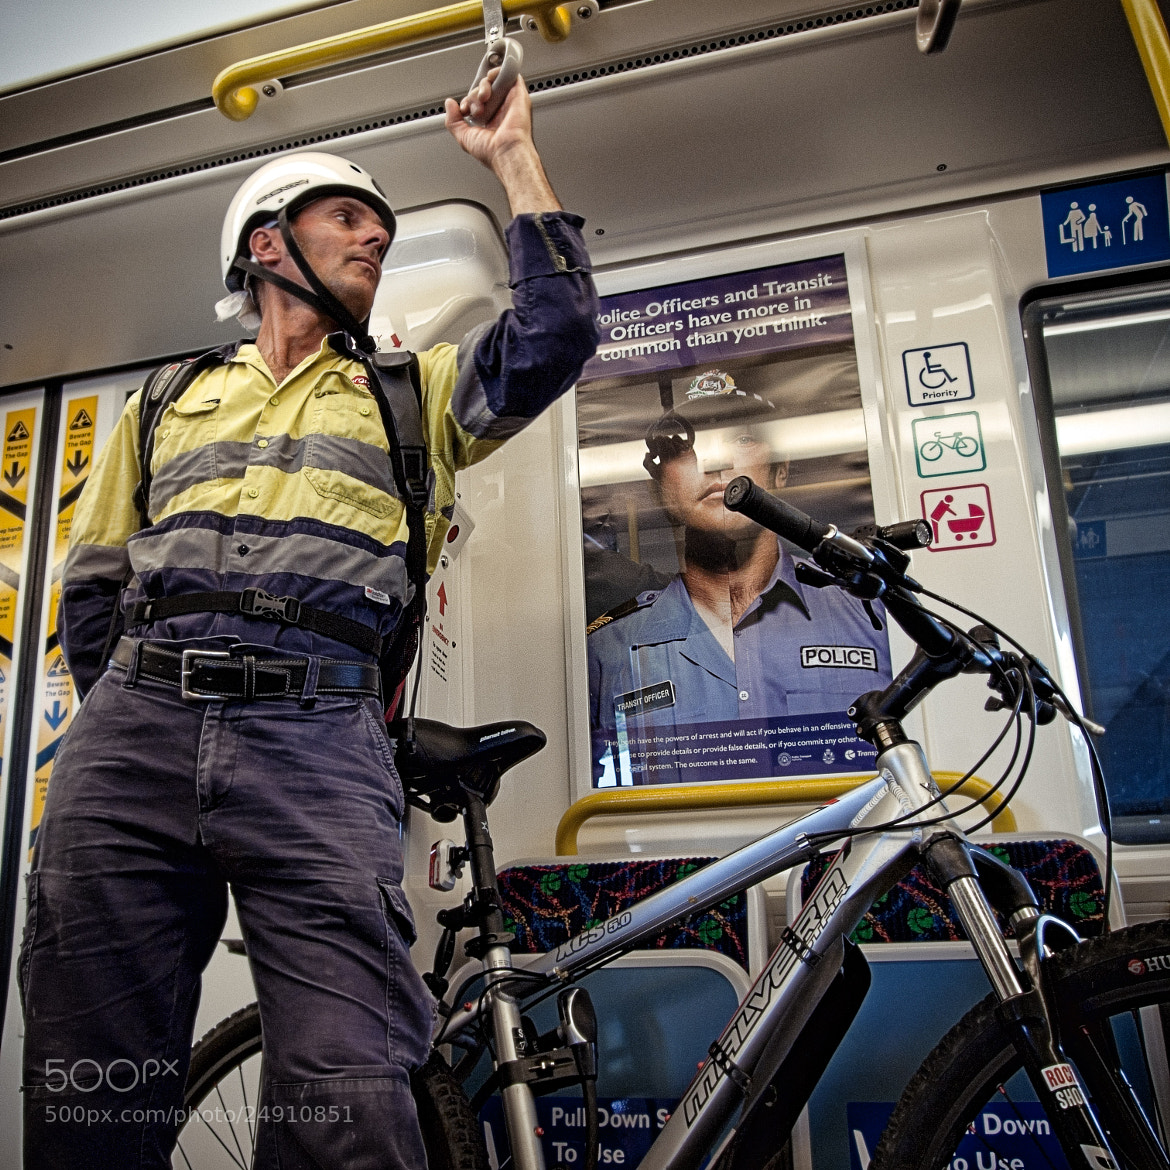 Photograph Mixed Mode Commuting by Paul Amyes on 500px